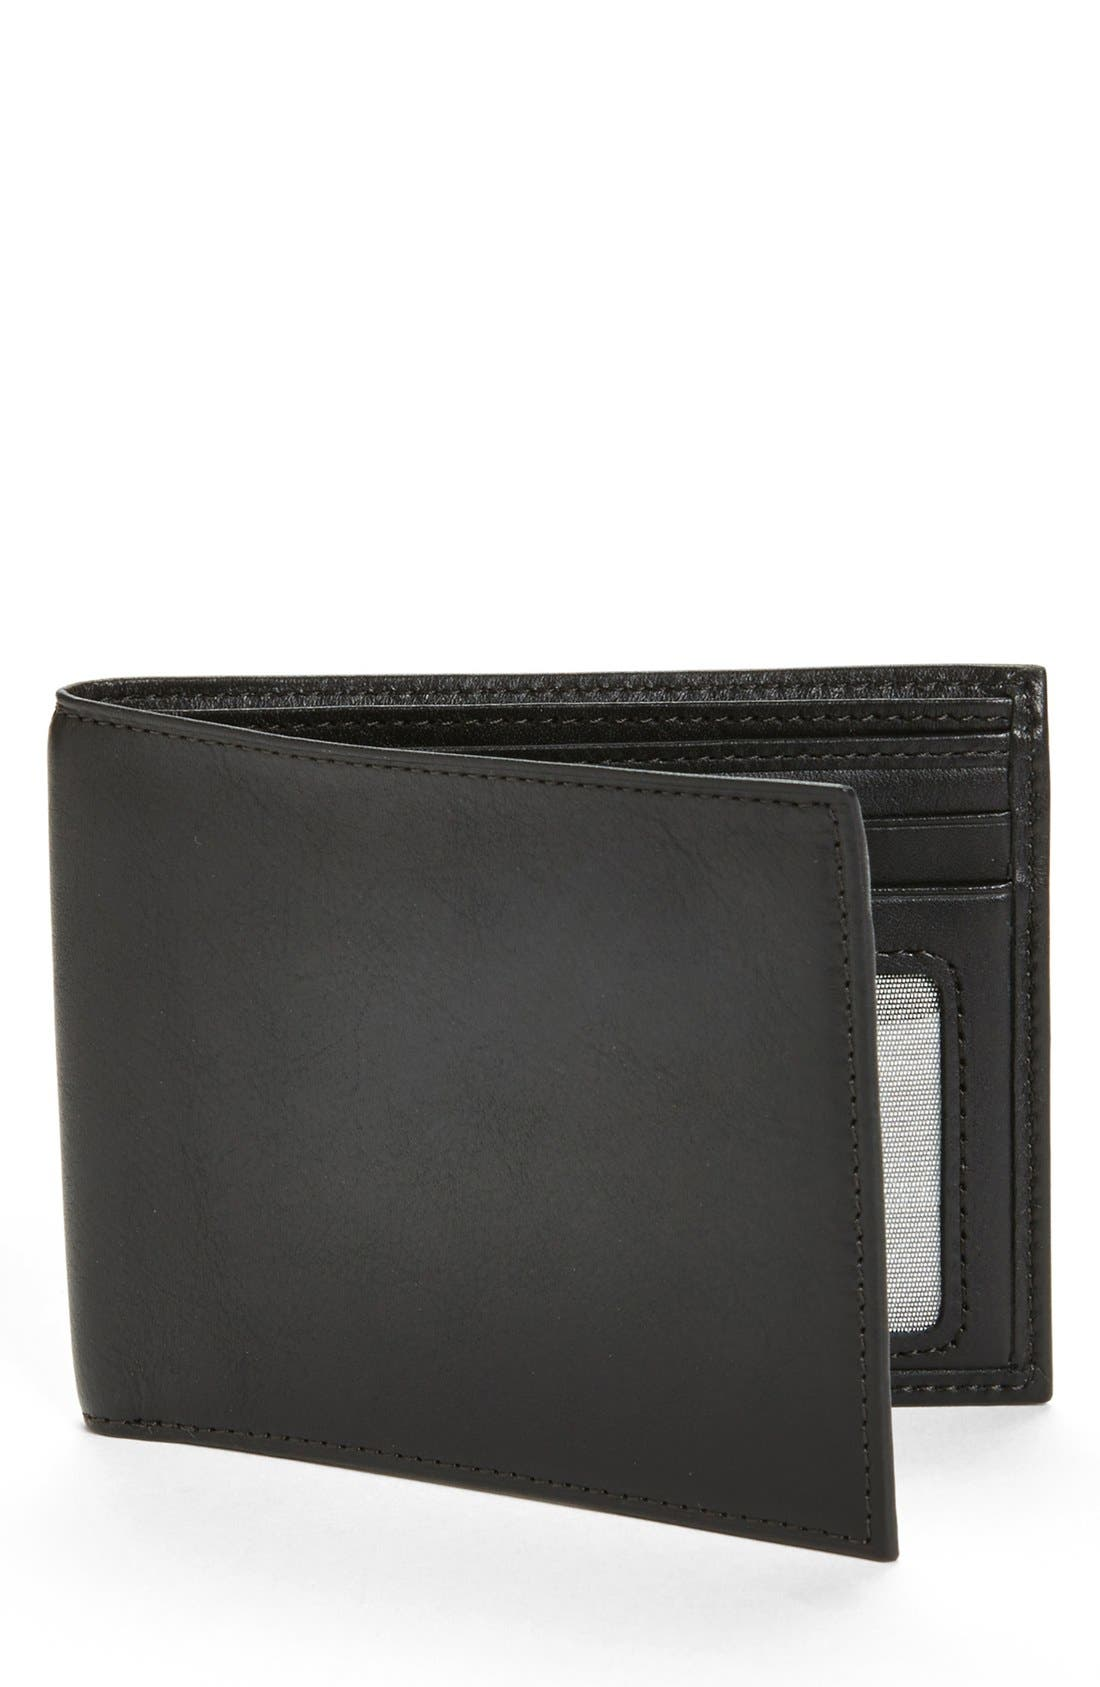 BOSCA Executive ID Nappa Leather Wallet